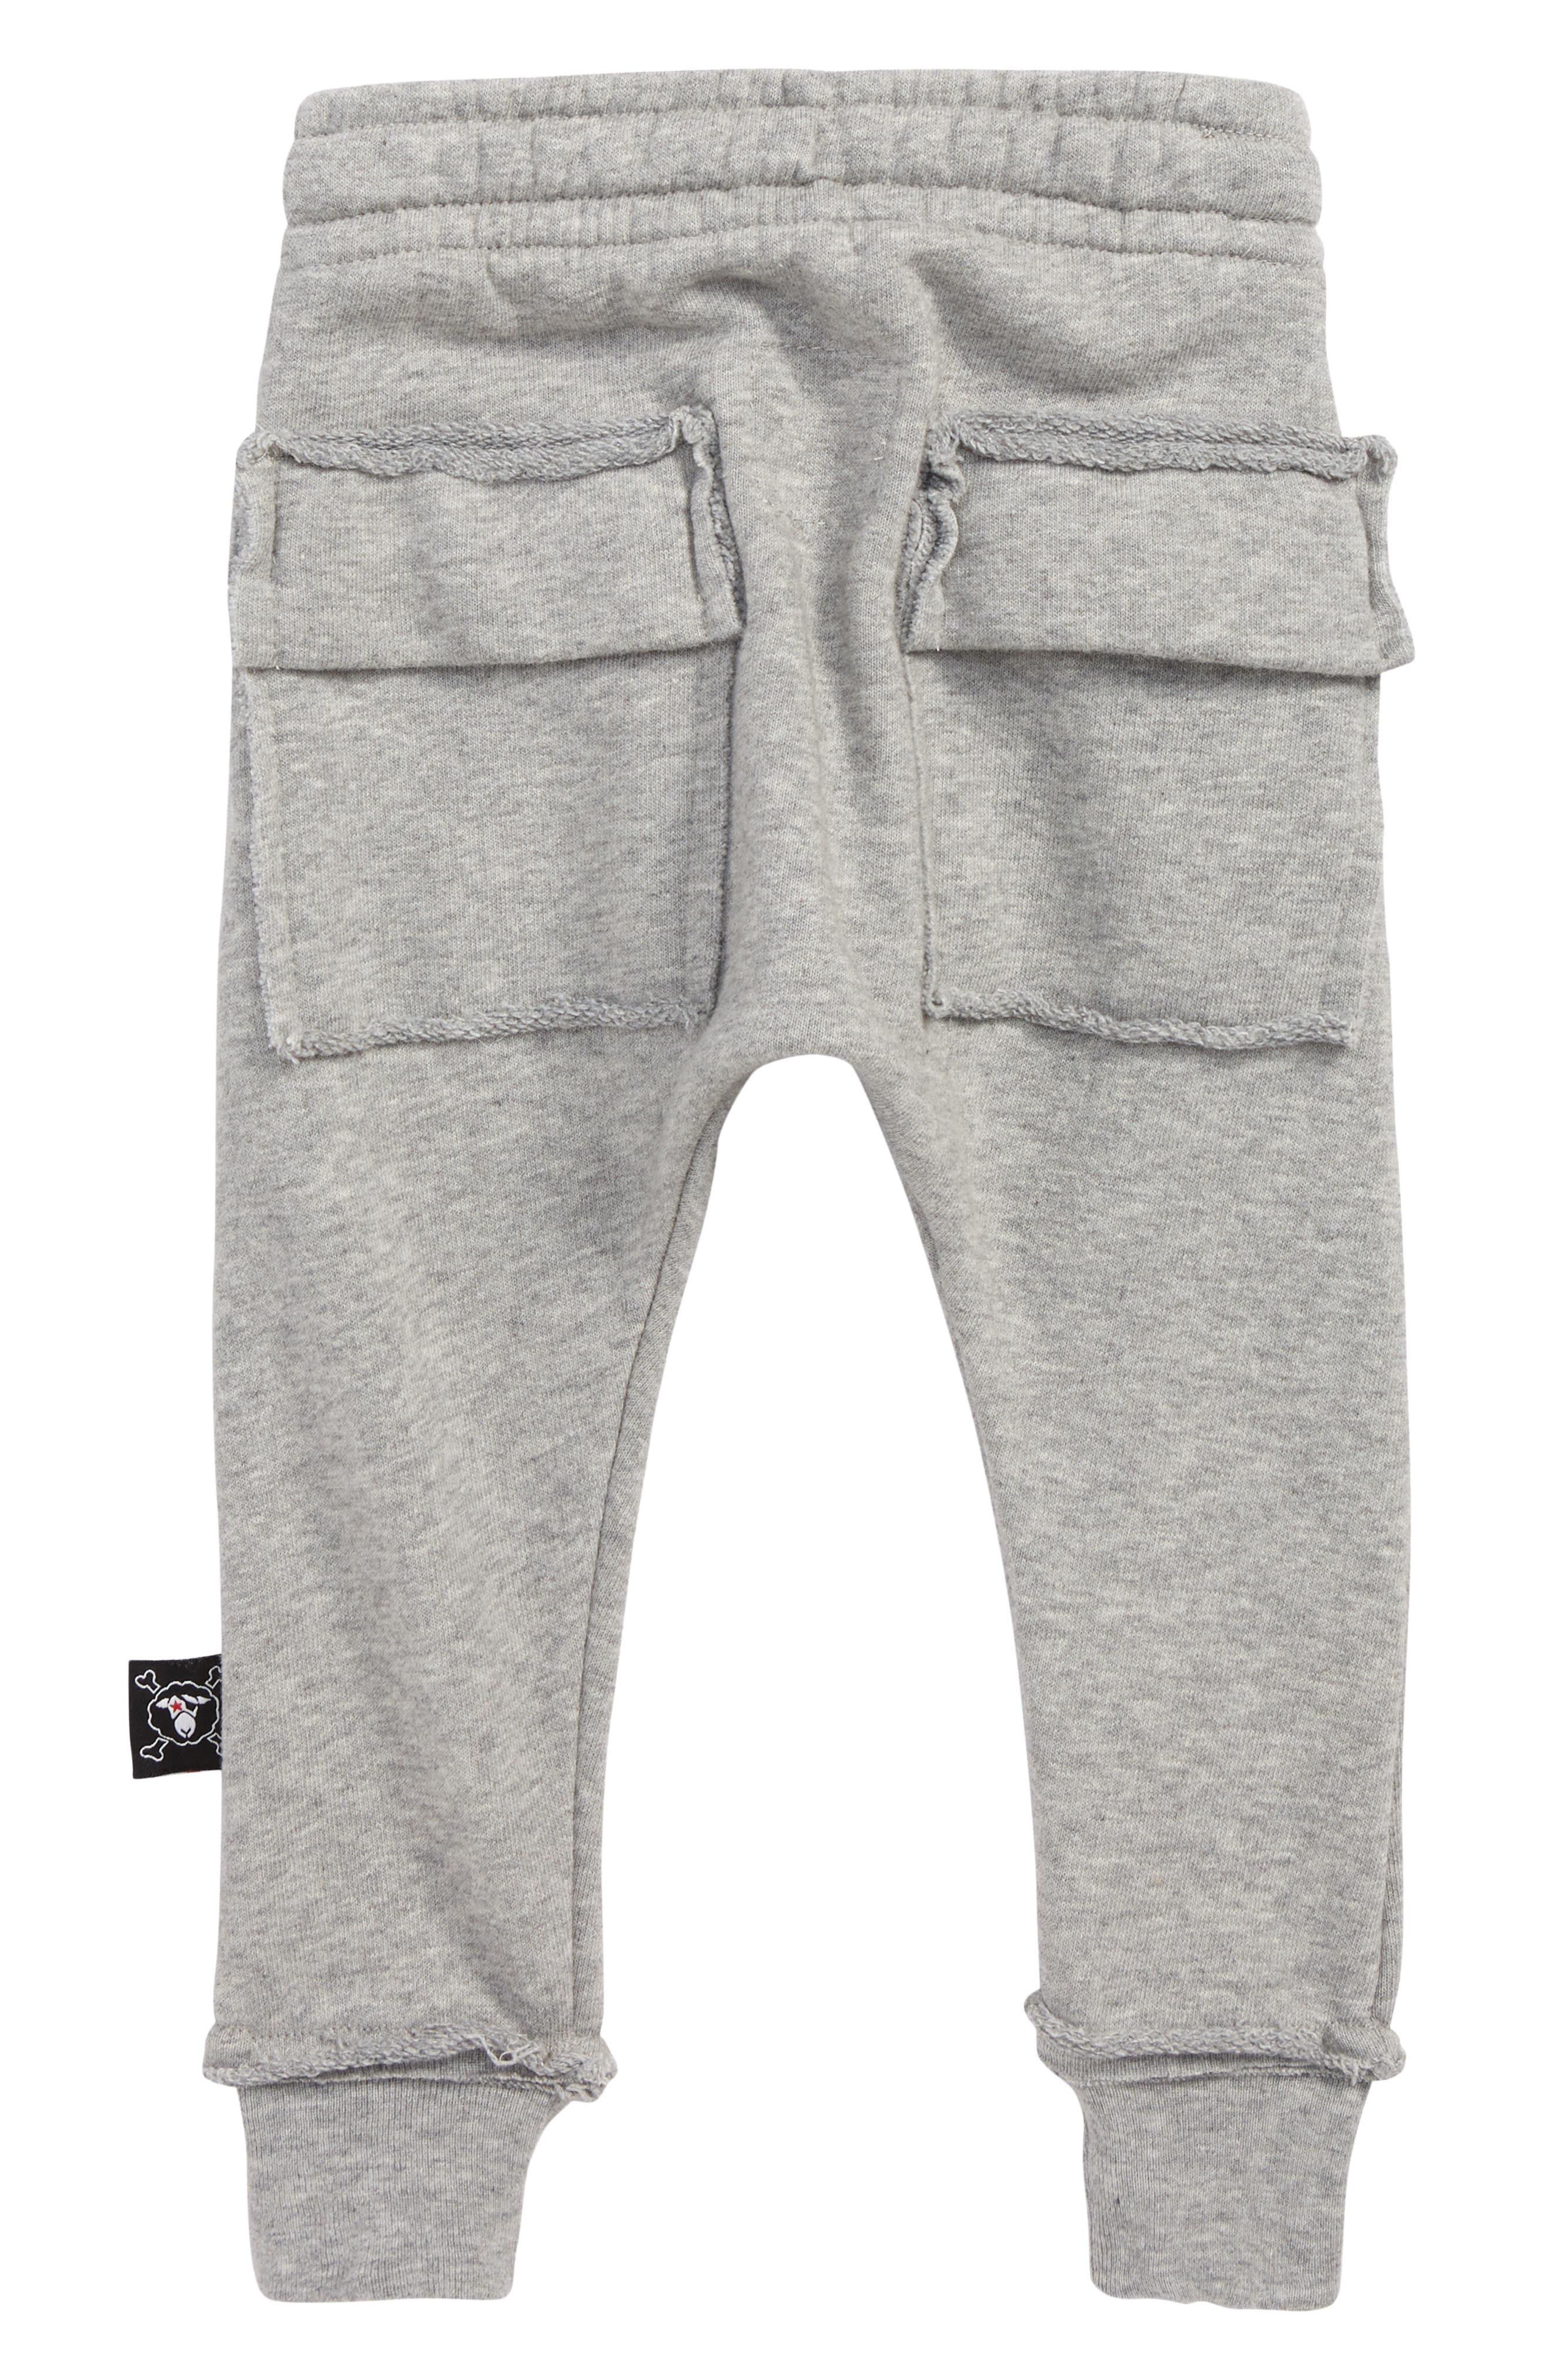 Skull Robot Patch Baggy Pants,                             Alternate thumbnail 2, color,                             HEATHER GREY